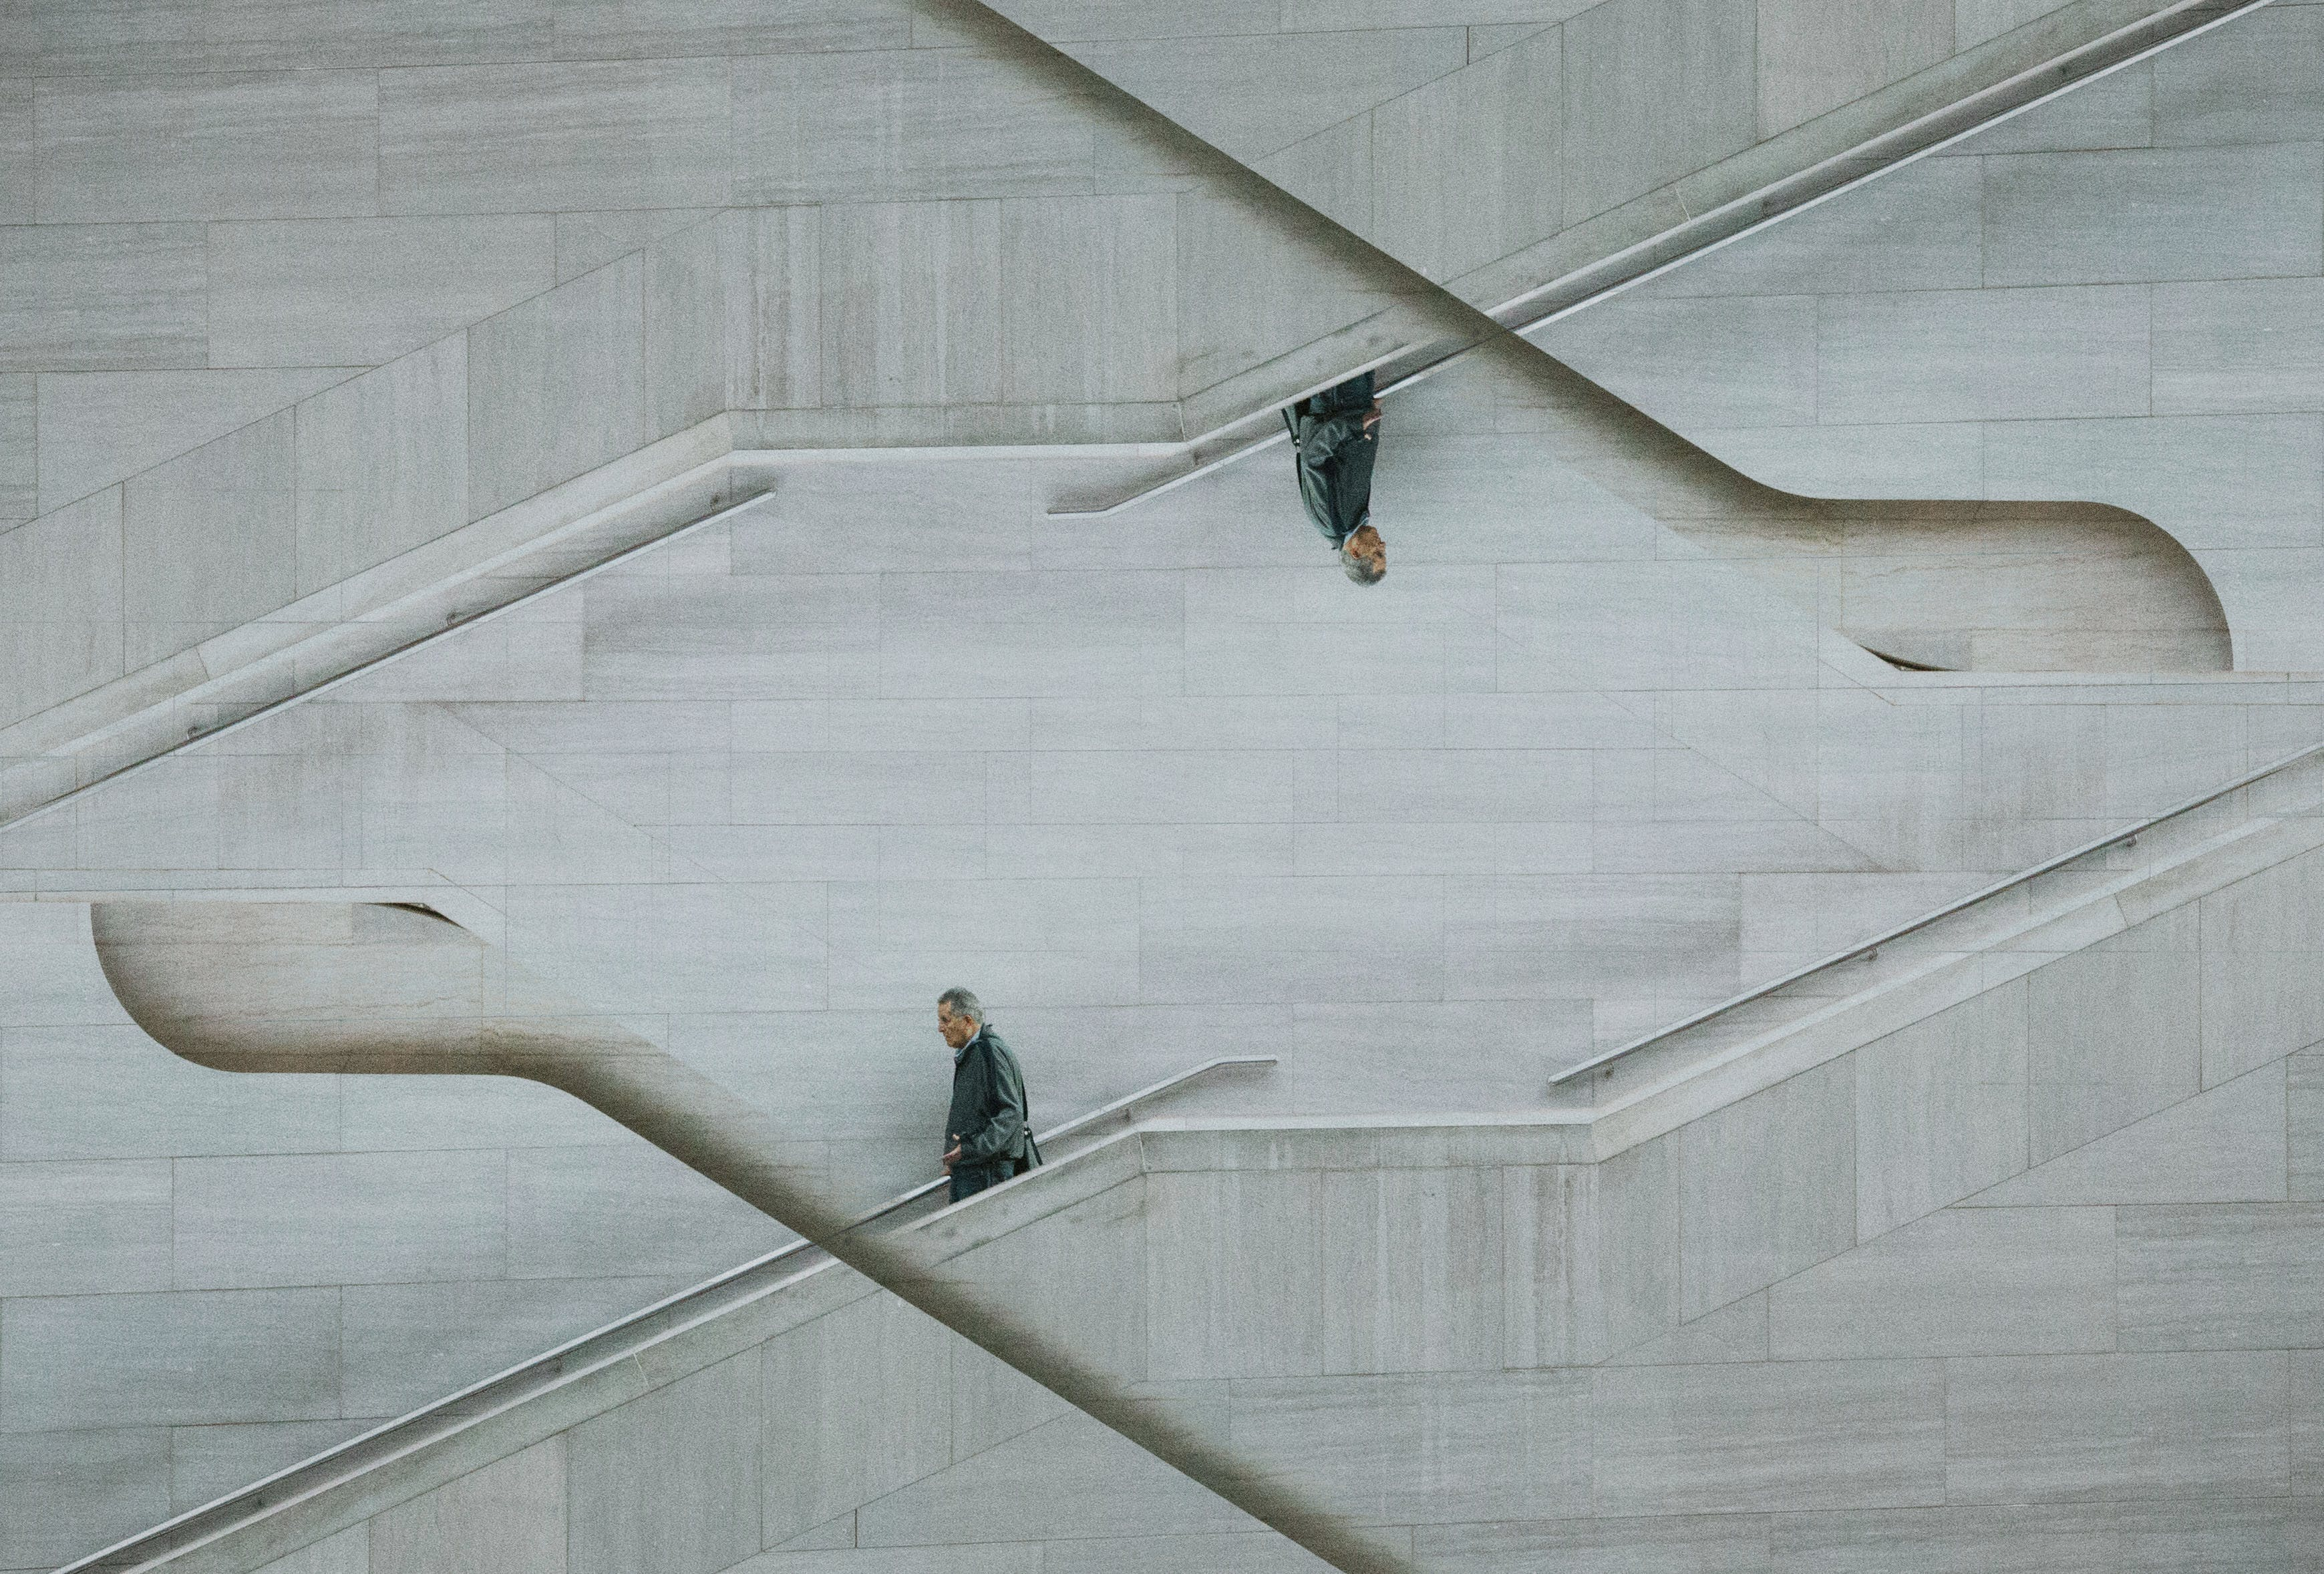 Optical Illusion Photo of Man on Stairs